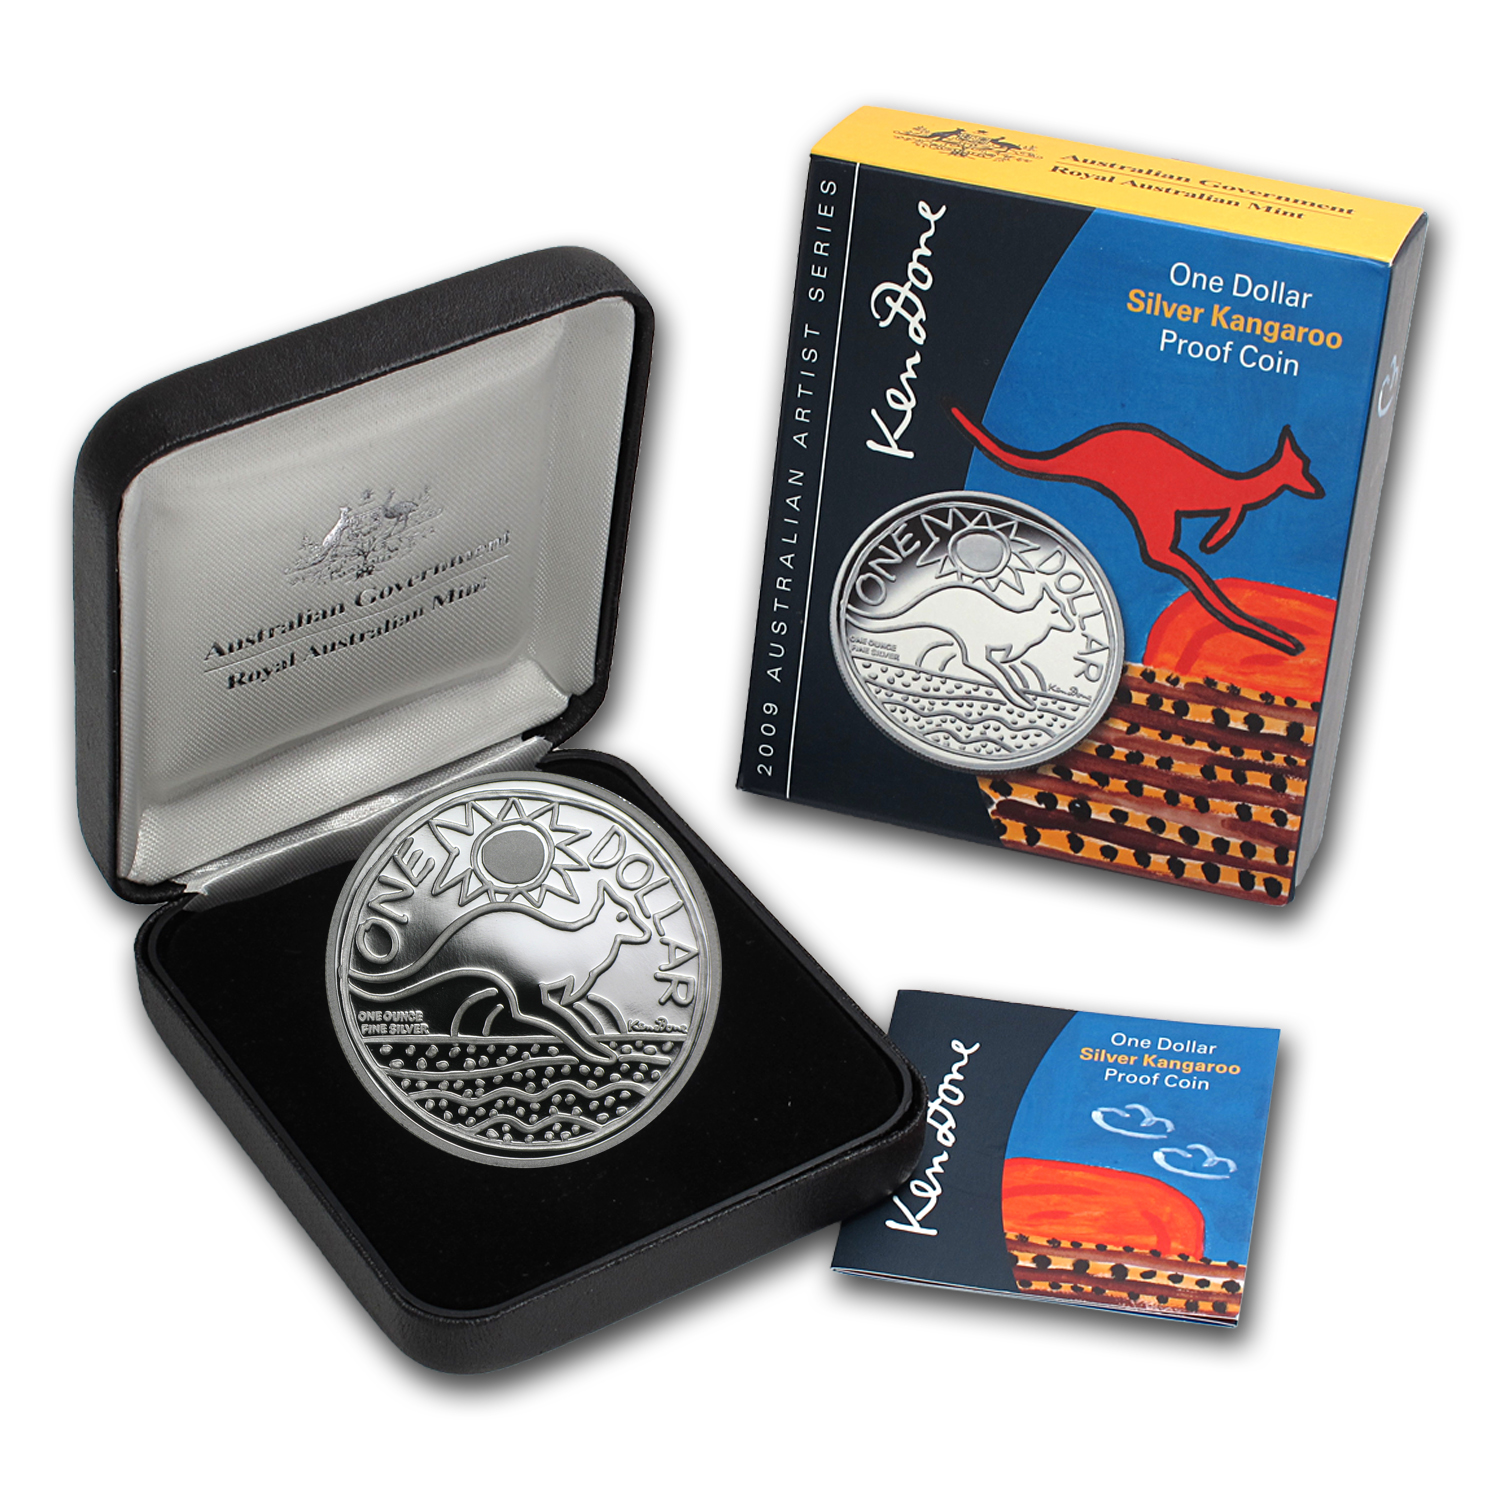 2009 Australia 1 oz Silver Proof Kangaroo Artists Series